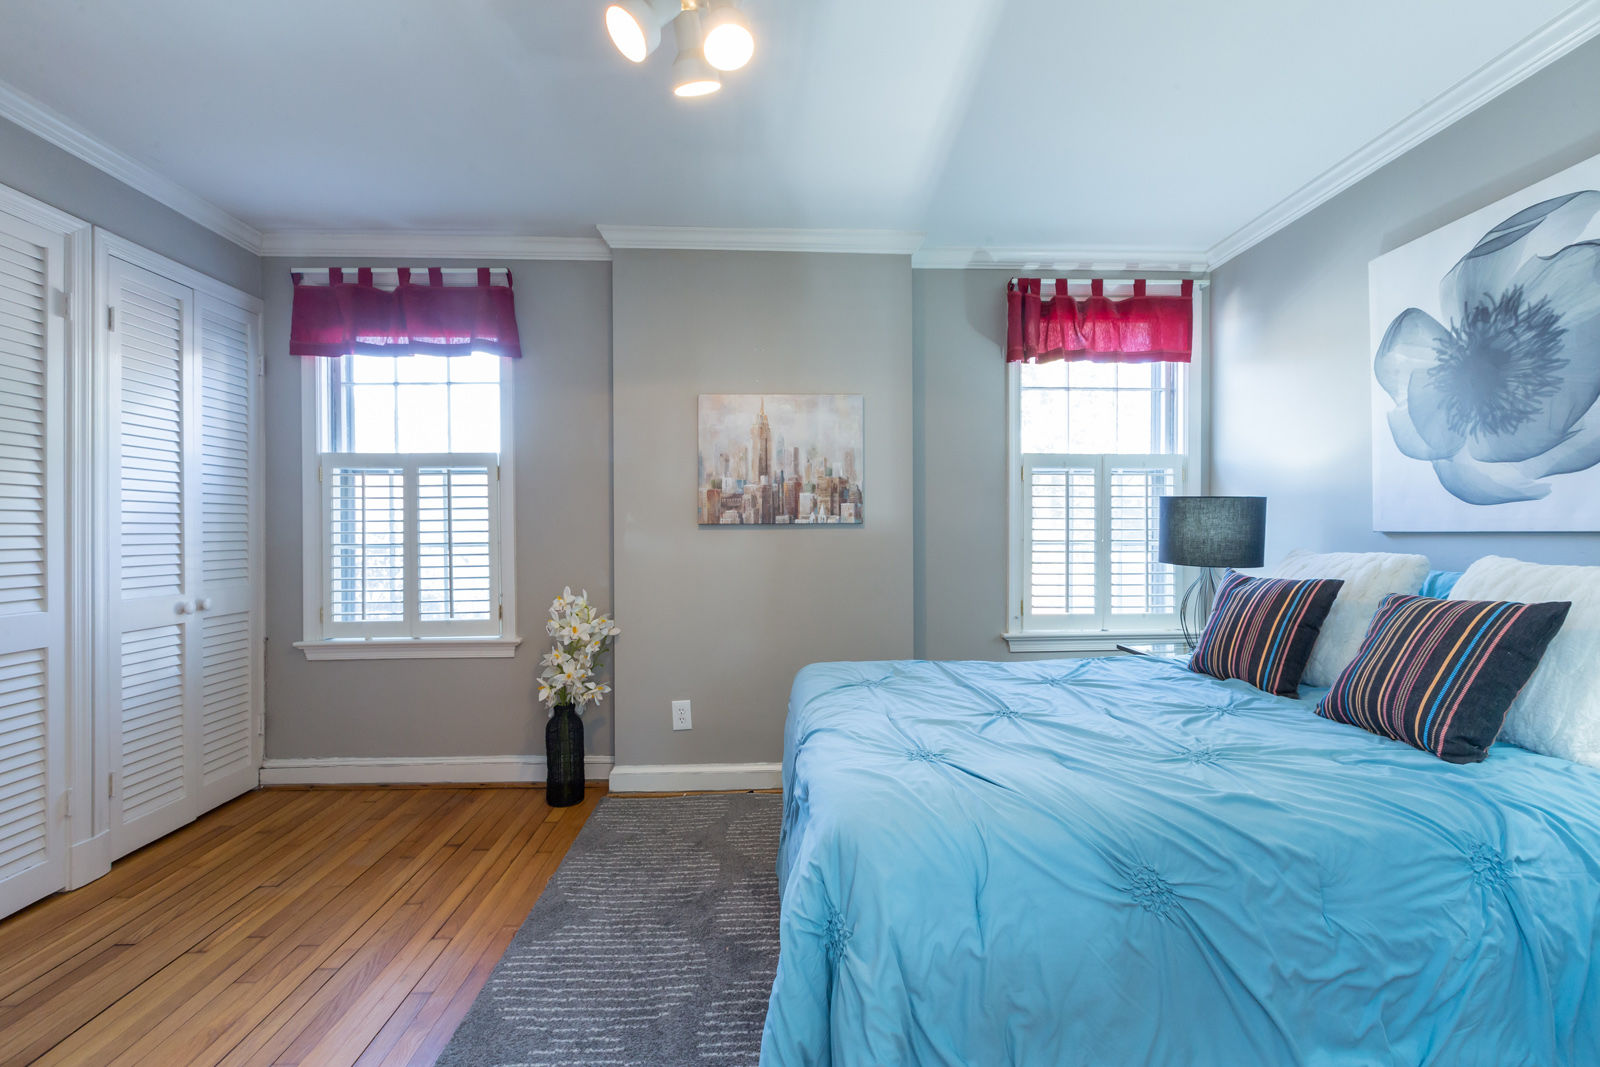 One of three bedrooms in the house. (Courtesy Sean Shanahan)